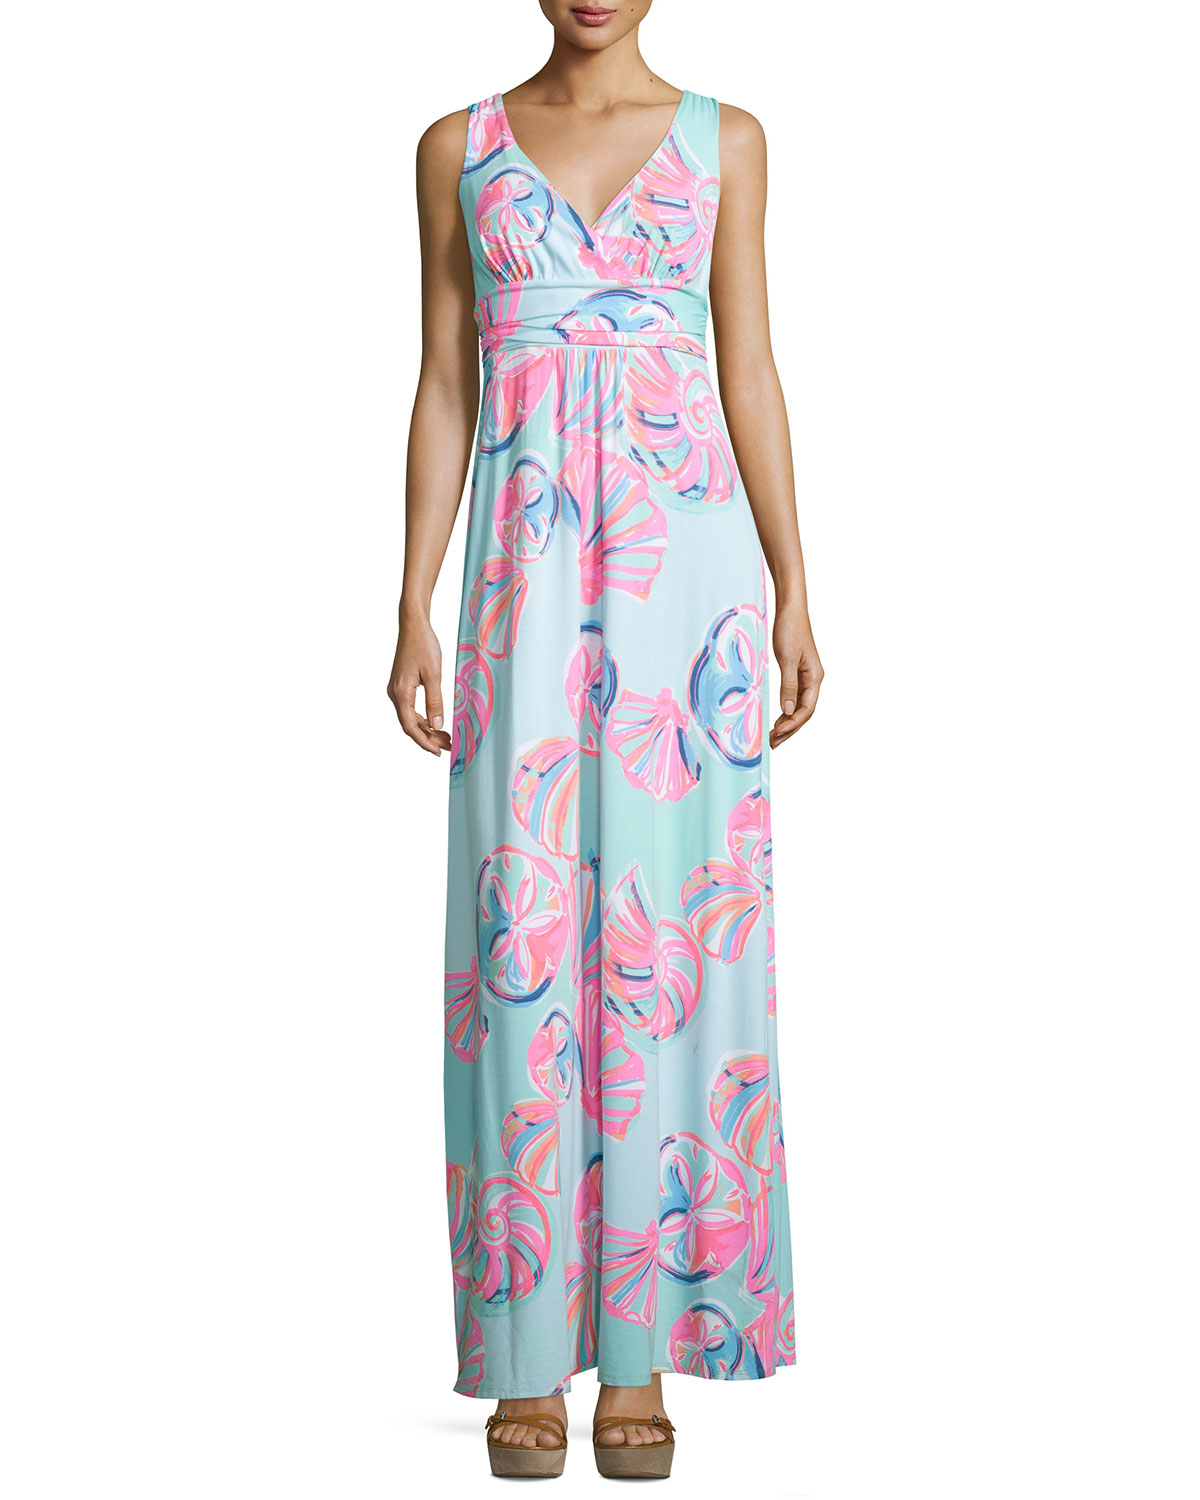 Lilly Pulitzer Sloane Printed Jersey Maxi Dress Neiman Marcus